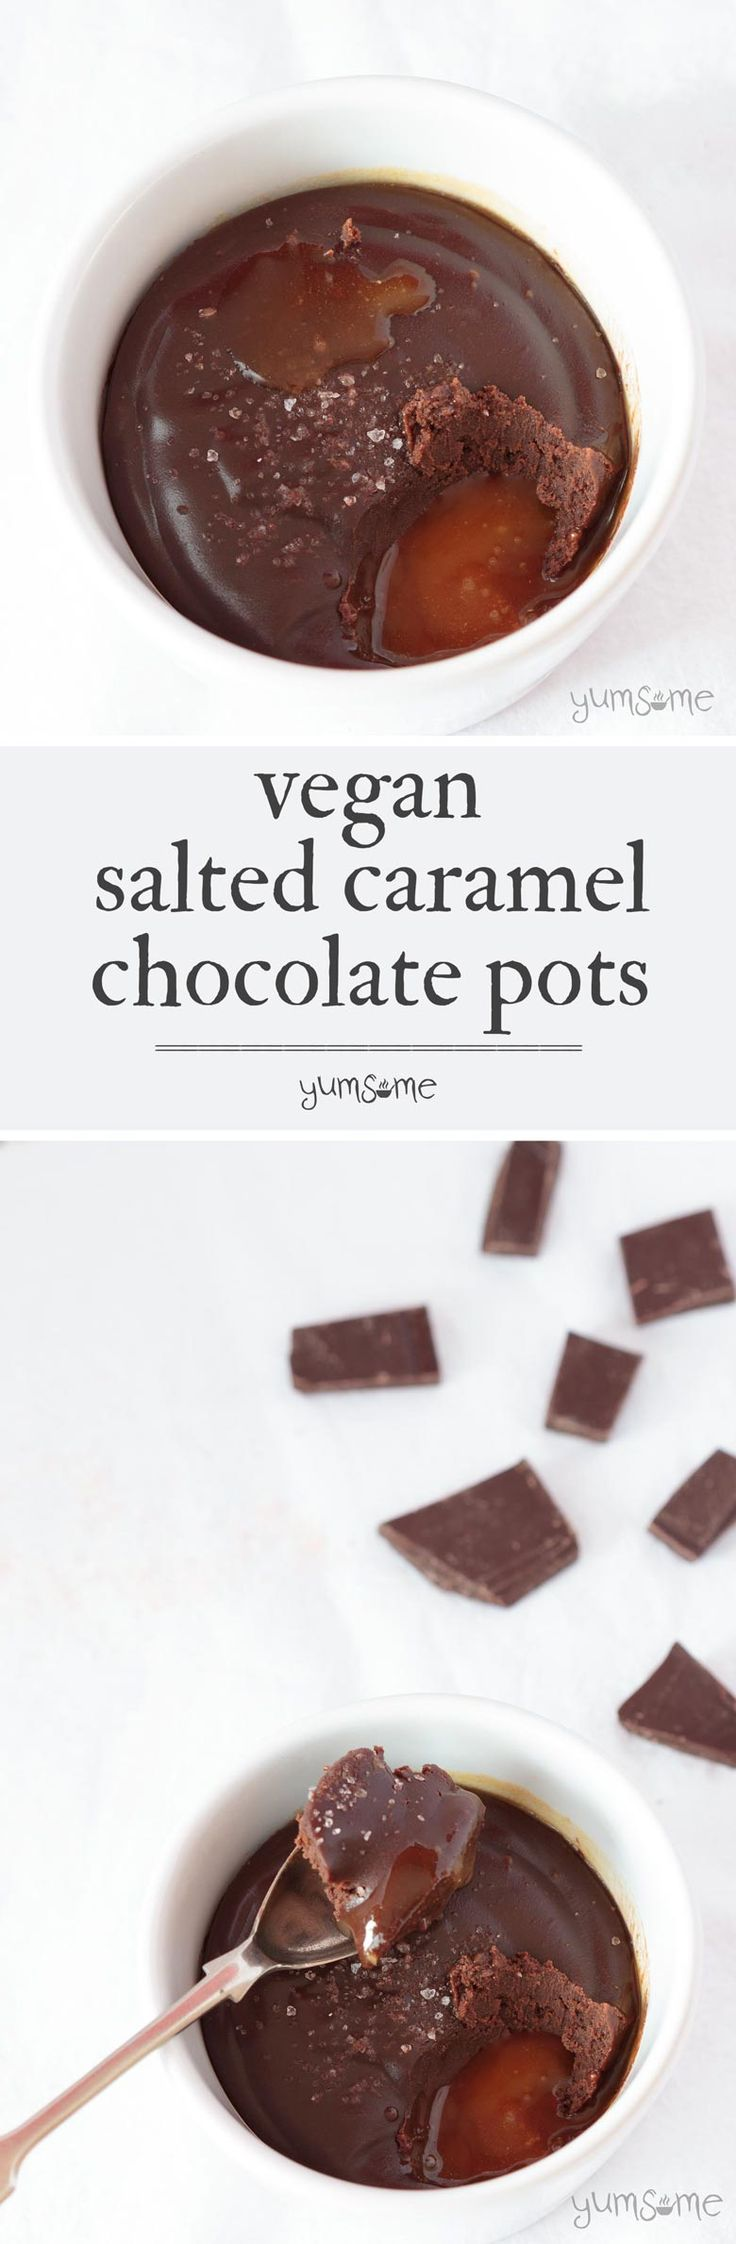 Vegan salted caramel chocolate pot; four ingredients, 10 minutes - all you need to make delicious pots of chocolatey delight! | yumsome.com